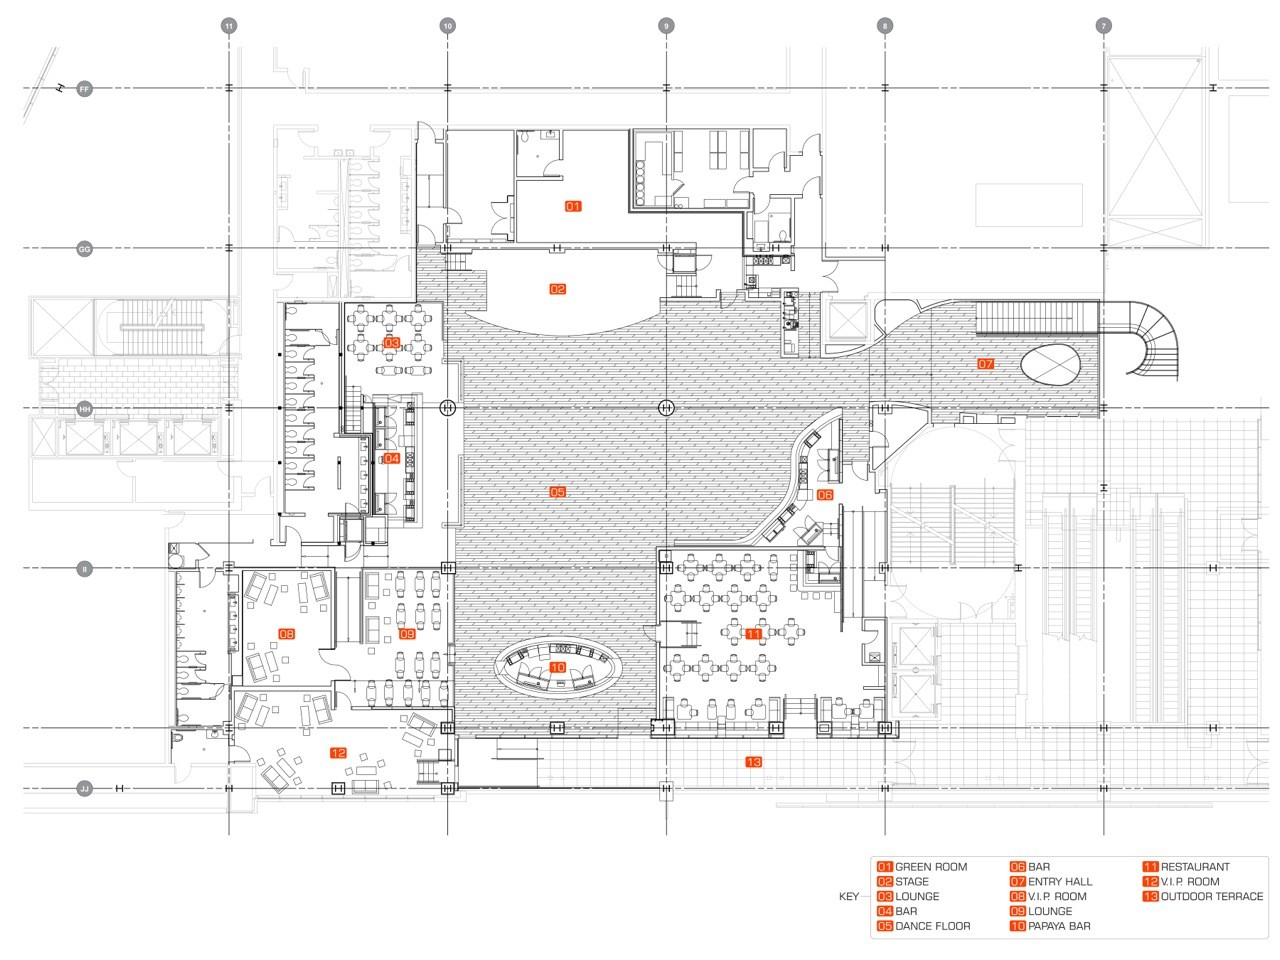 Gallery Of The Conga Room Belzberg Architects 38 Media Wiring Diagram Roomplan